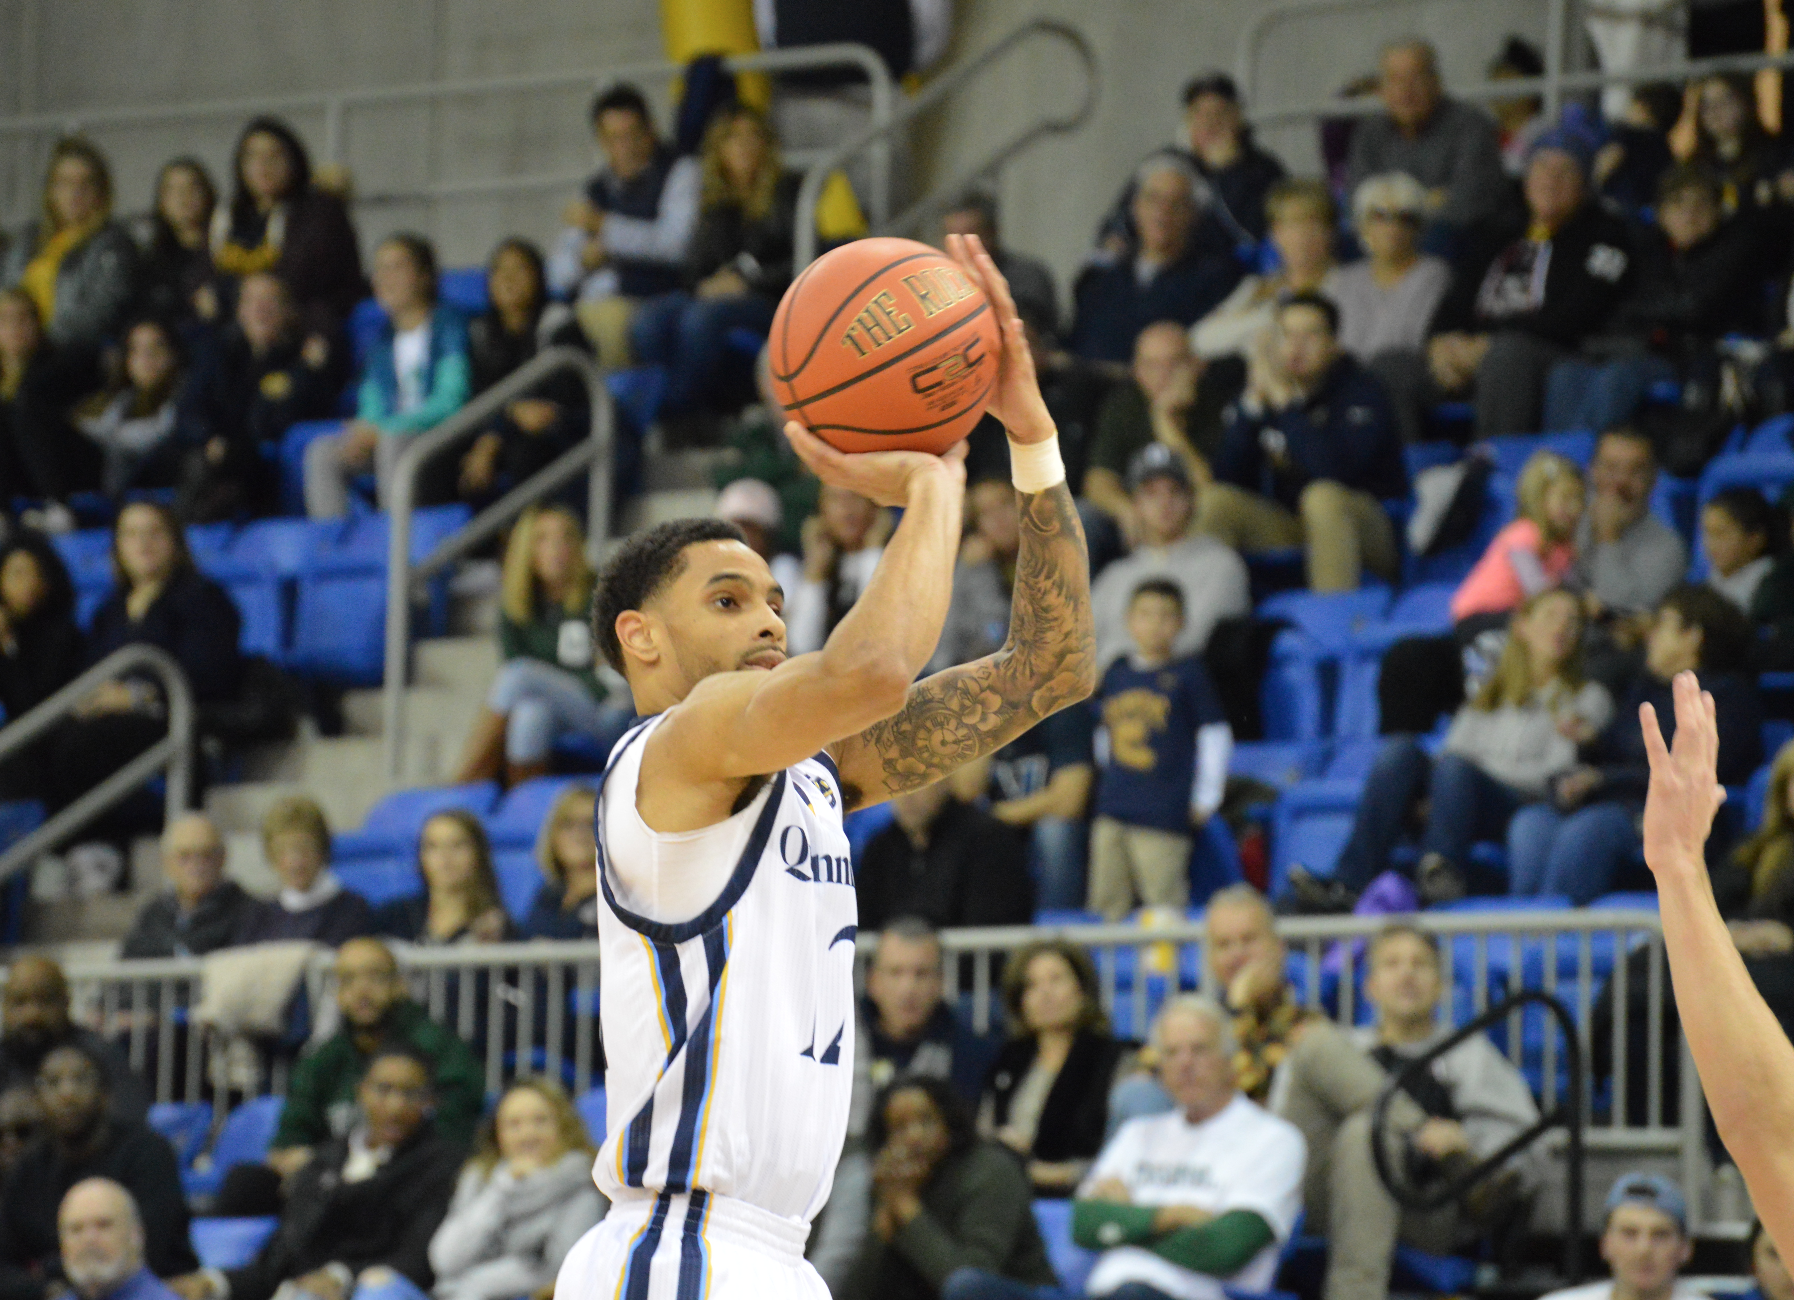 Quinnipiac men's basketball outlasts Dartmouth, 78-77